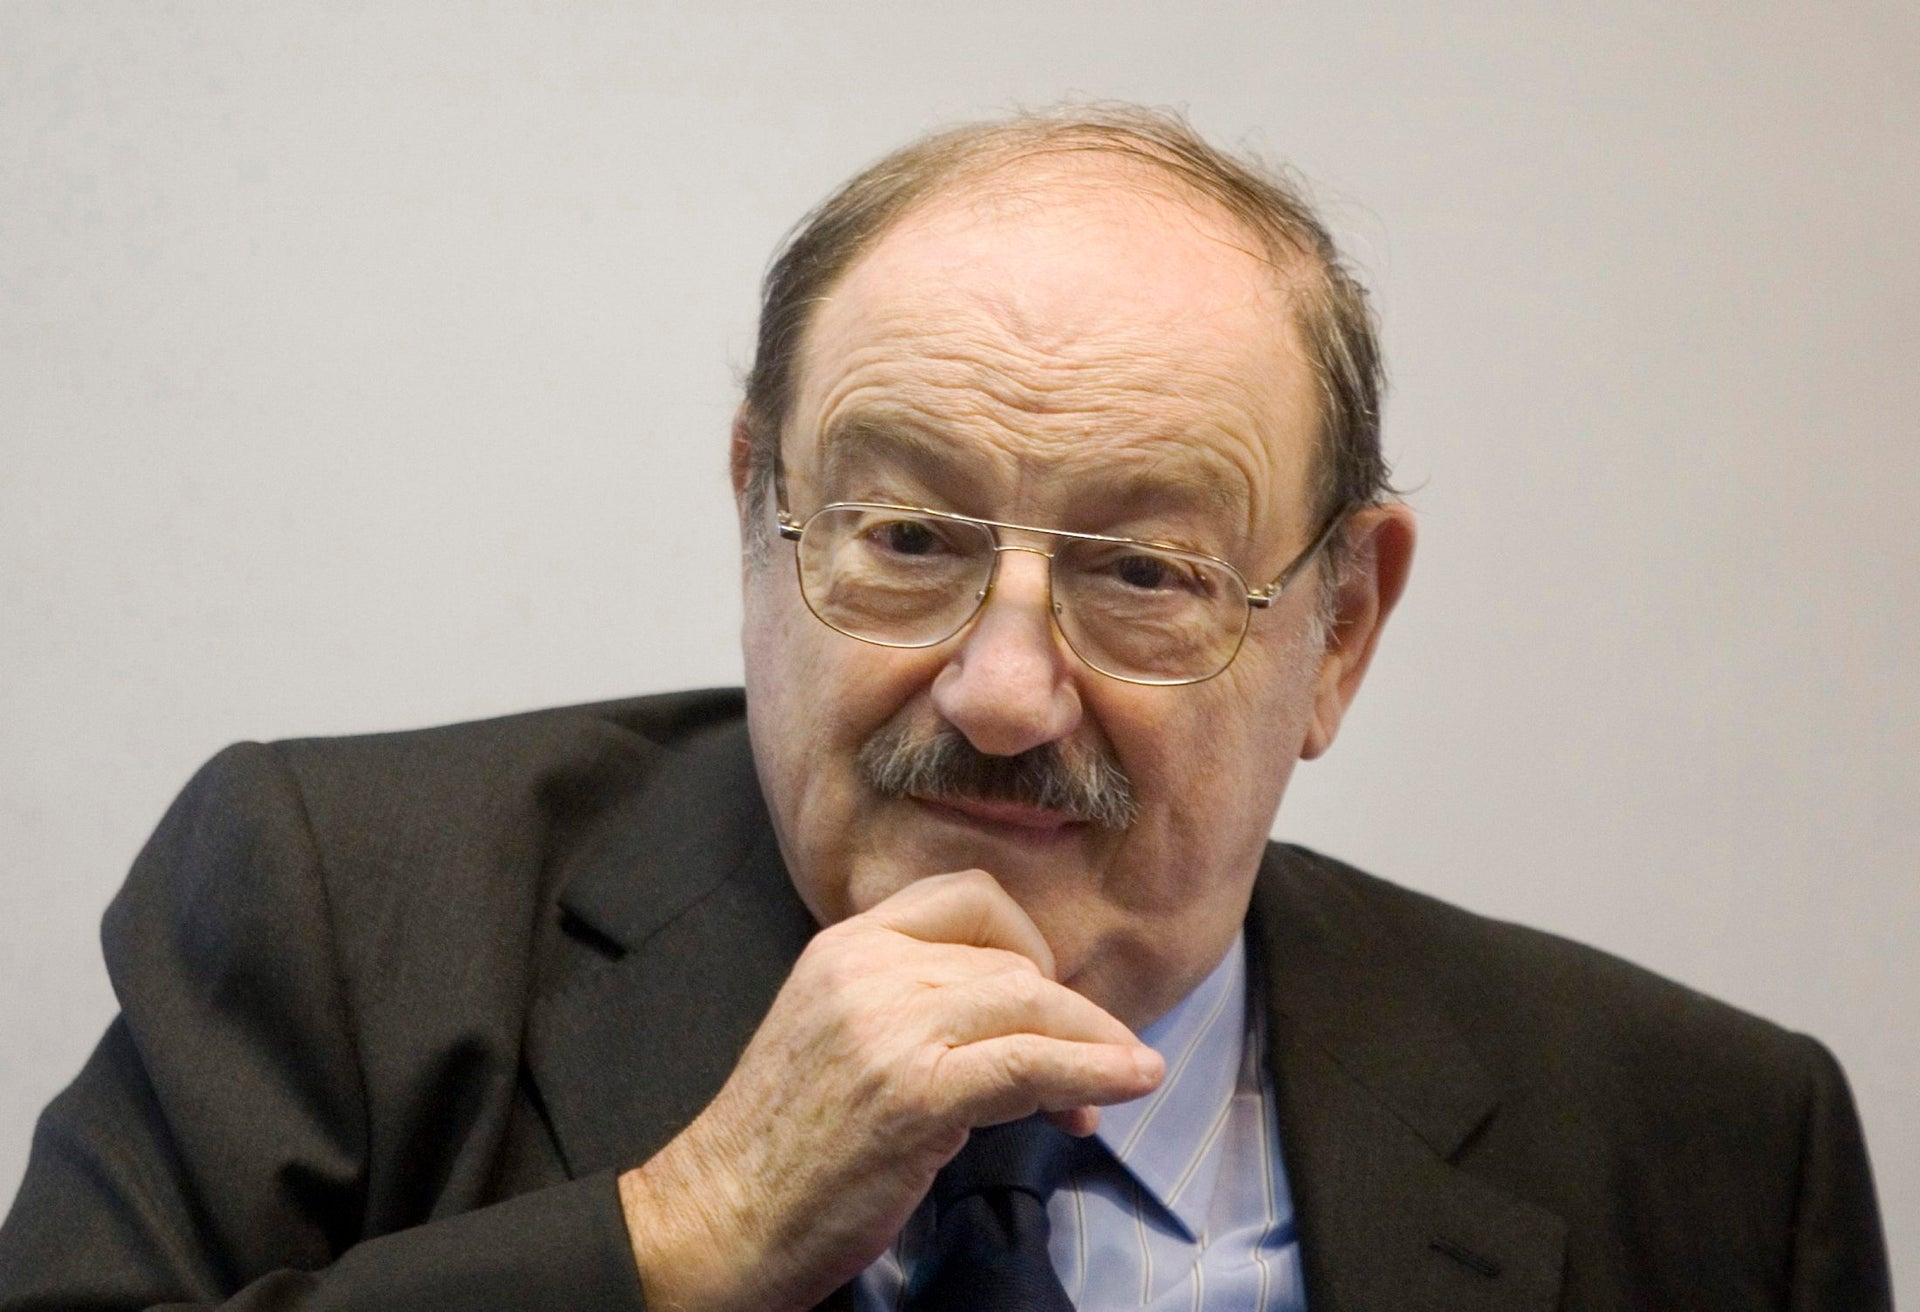 The late writer Umberto Eco during the 25th Annual Book Fair in Jerusalem, February 2011.